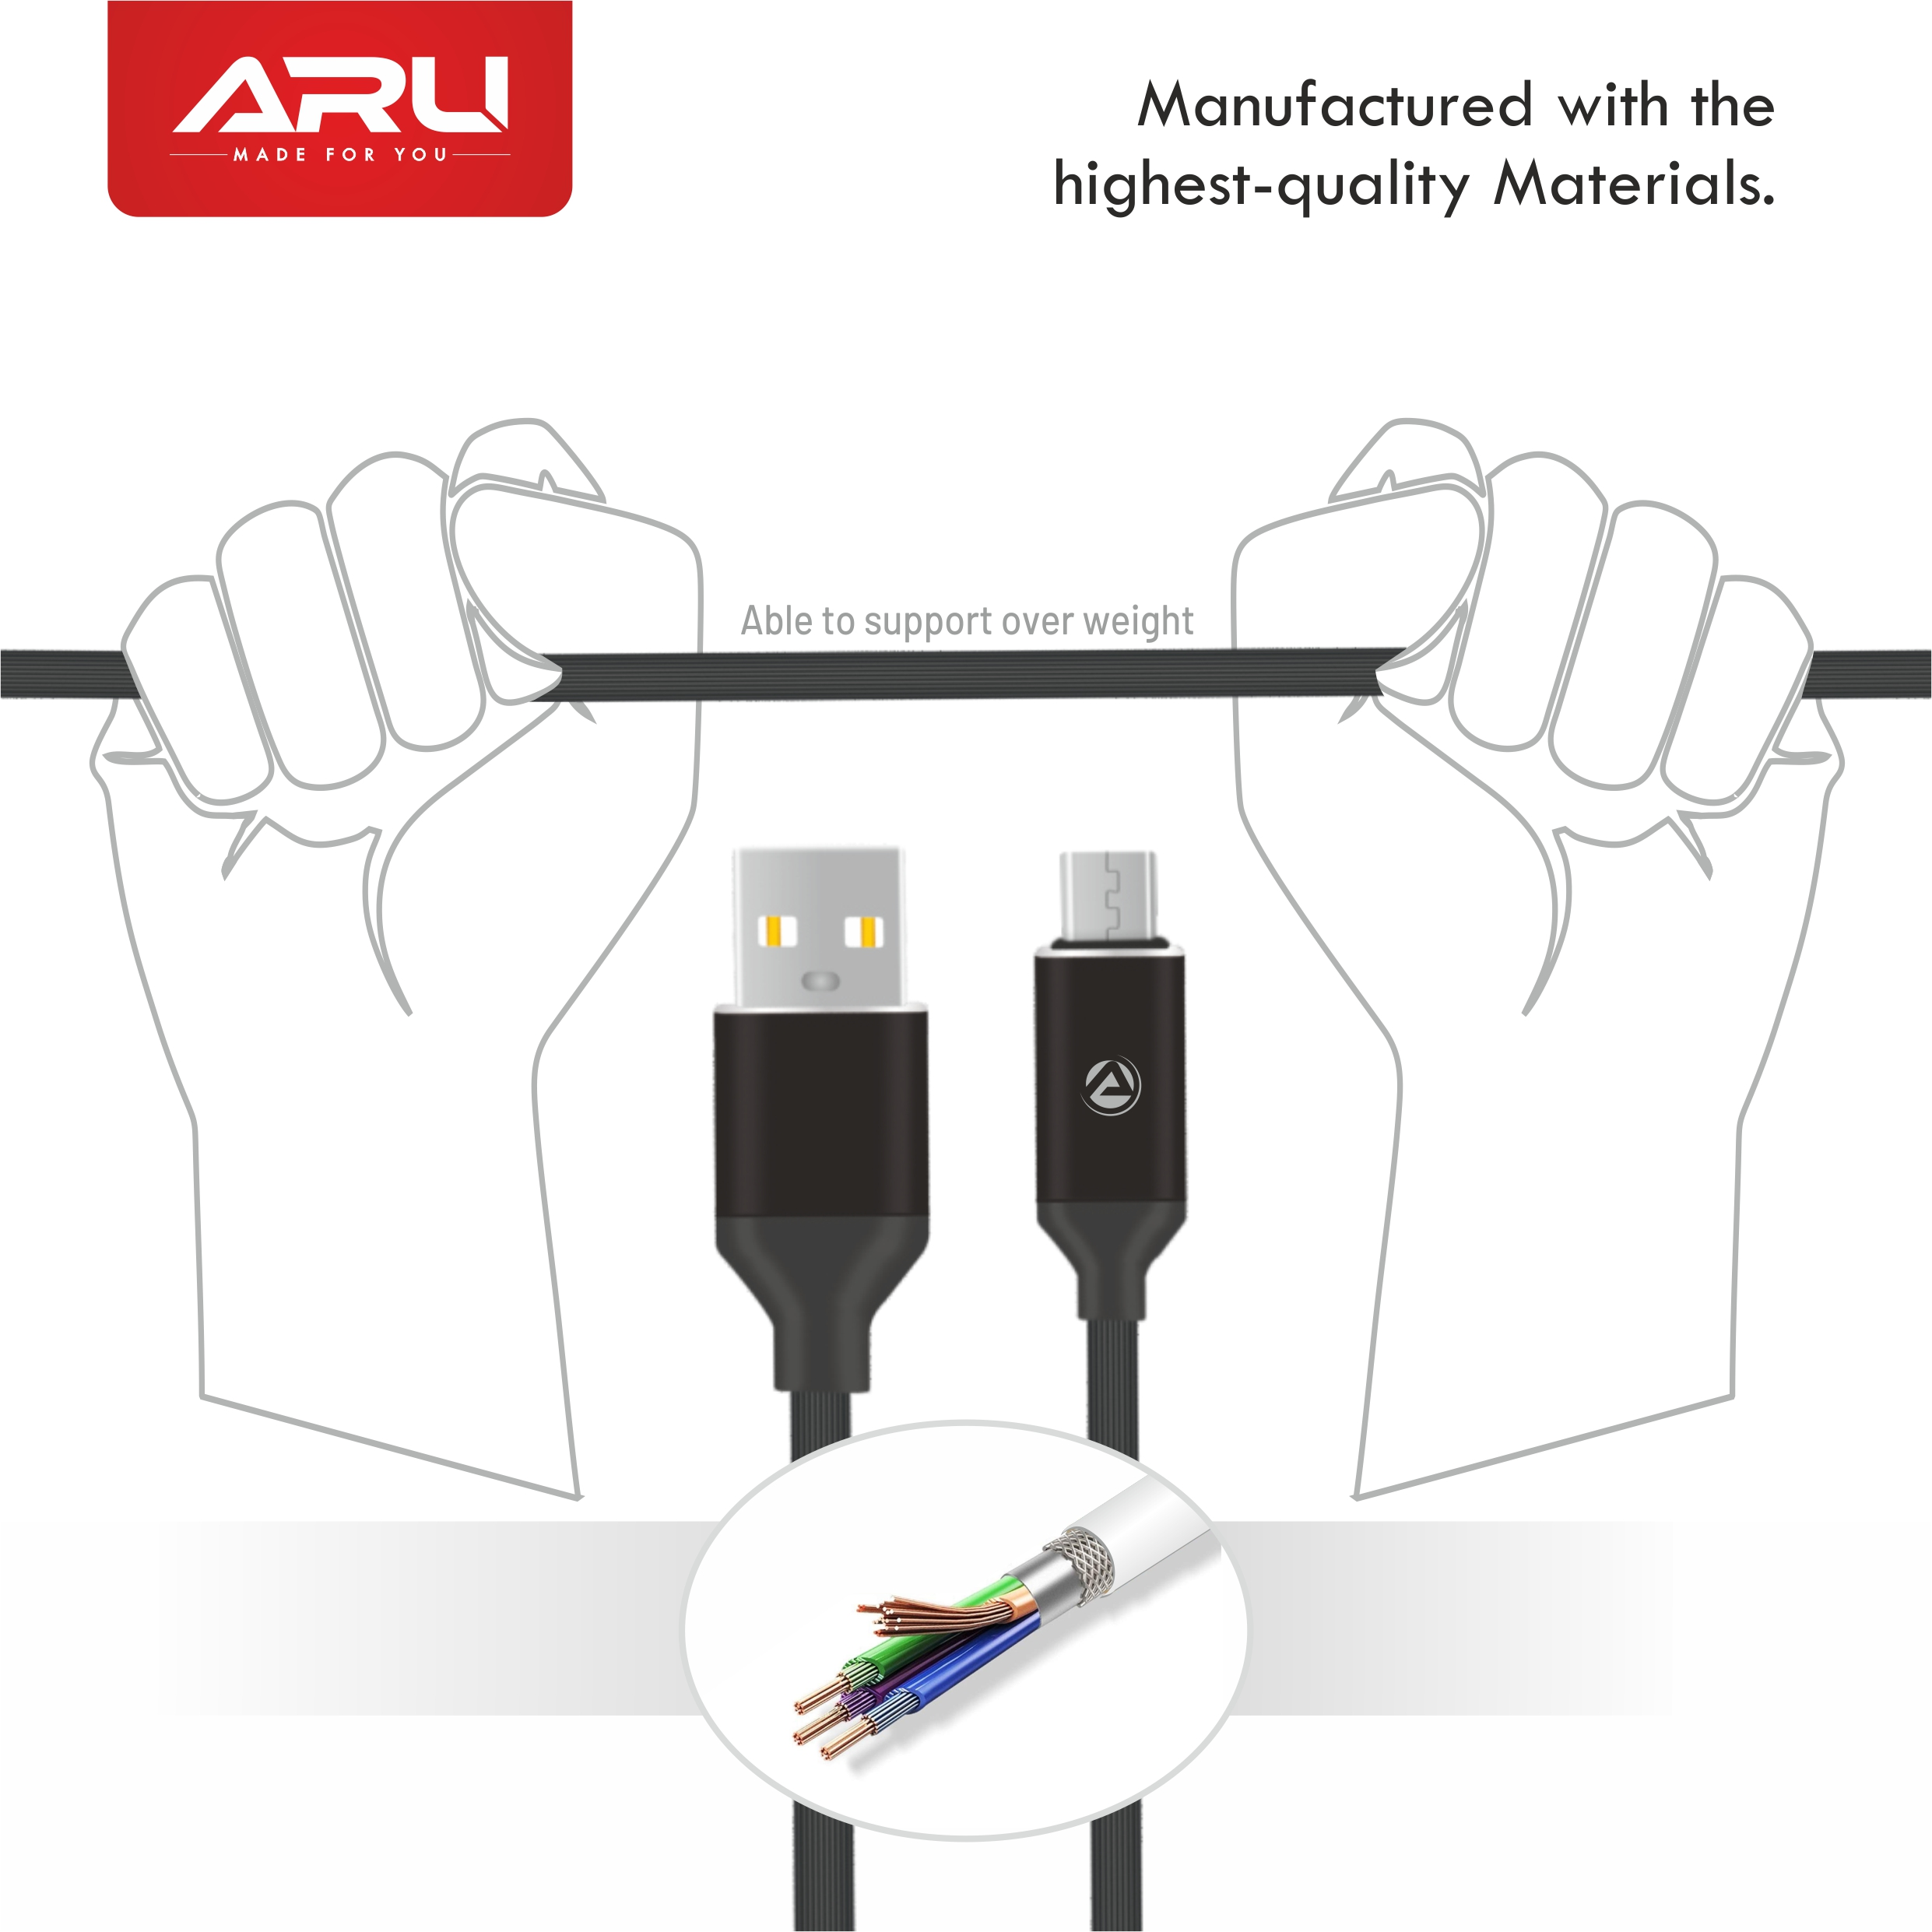 ARU ARA-55 1Mtr,2.4 Amp TPE Lining Micro USB Charge & Sync Cable - Black